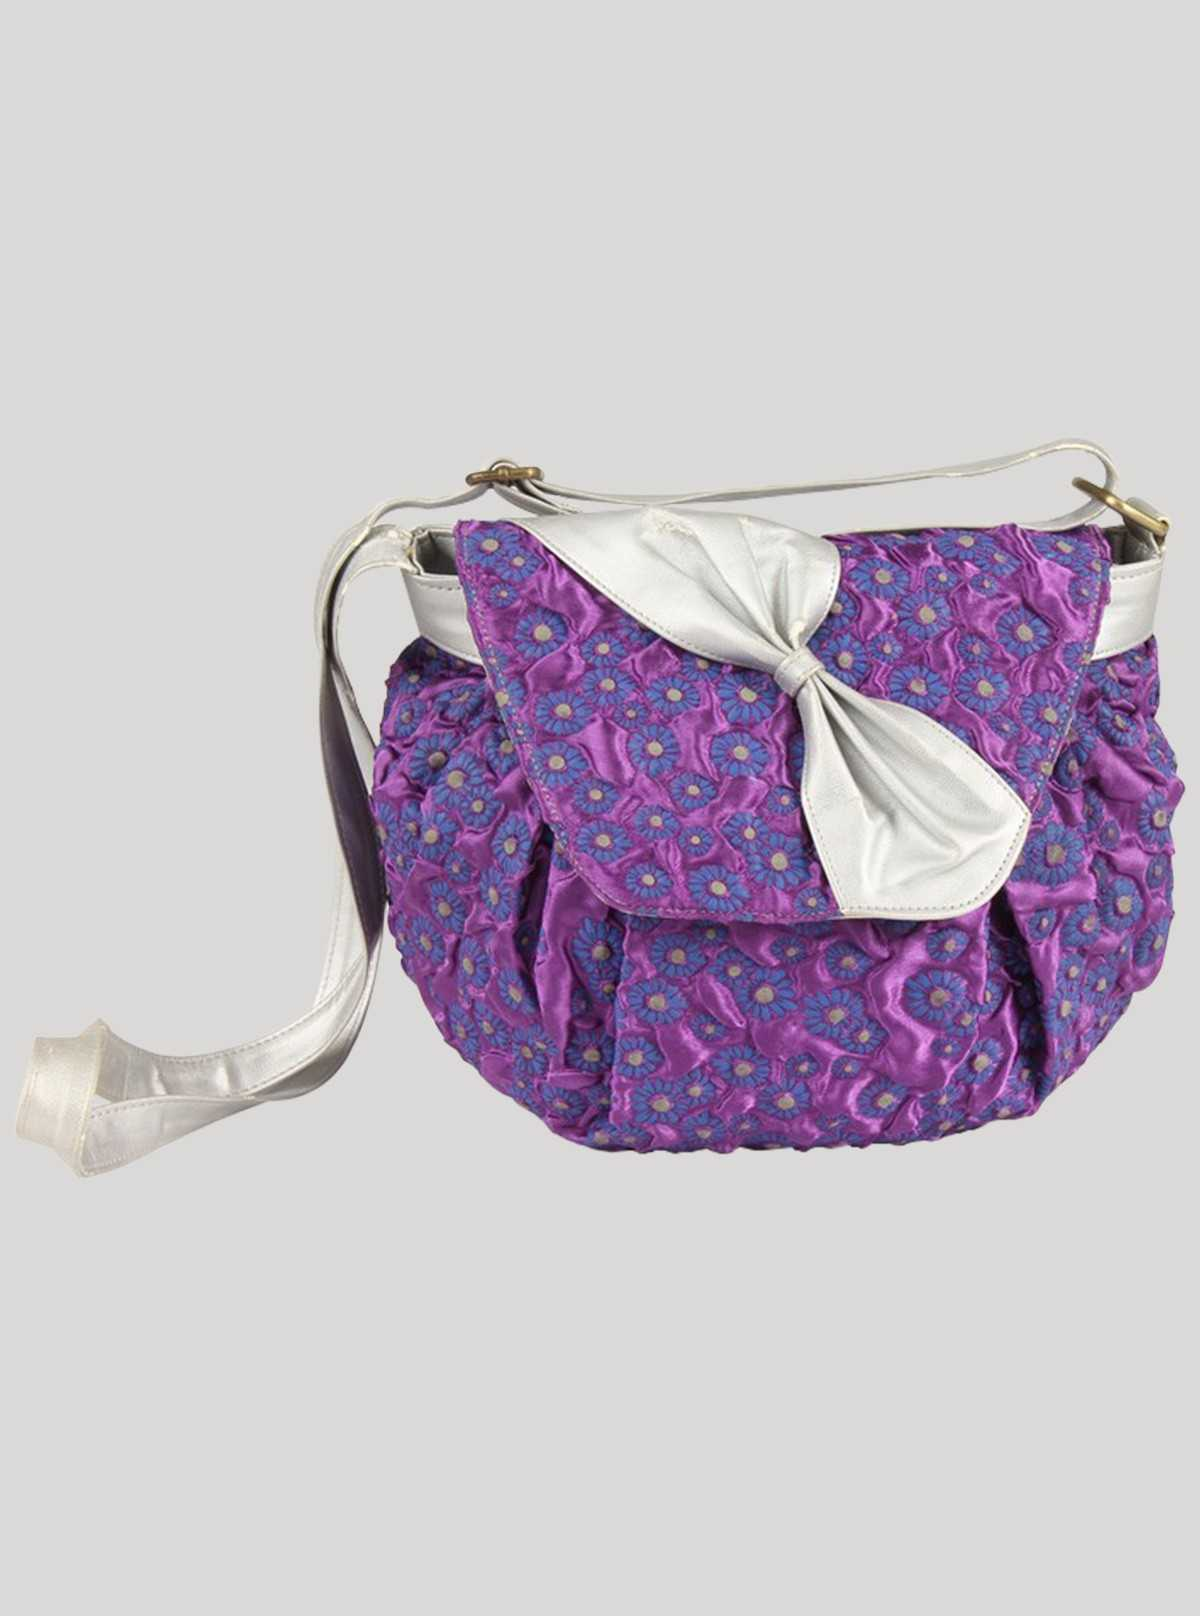 Purple Sling Bag Boer and Fitch - 1